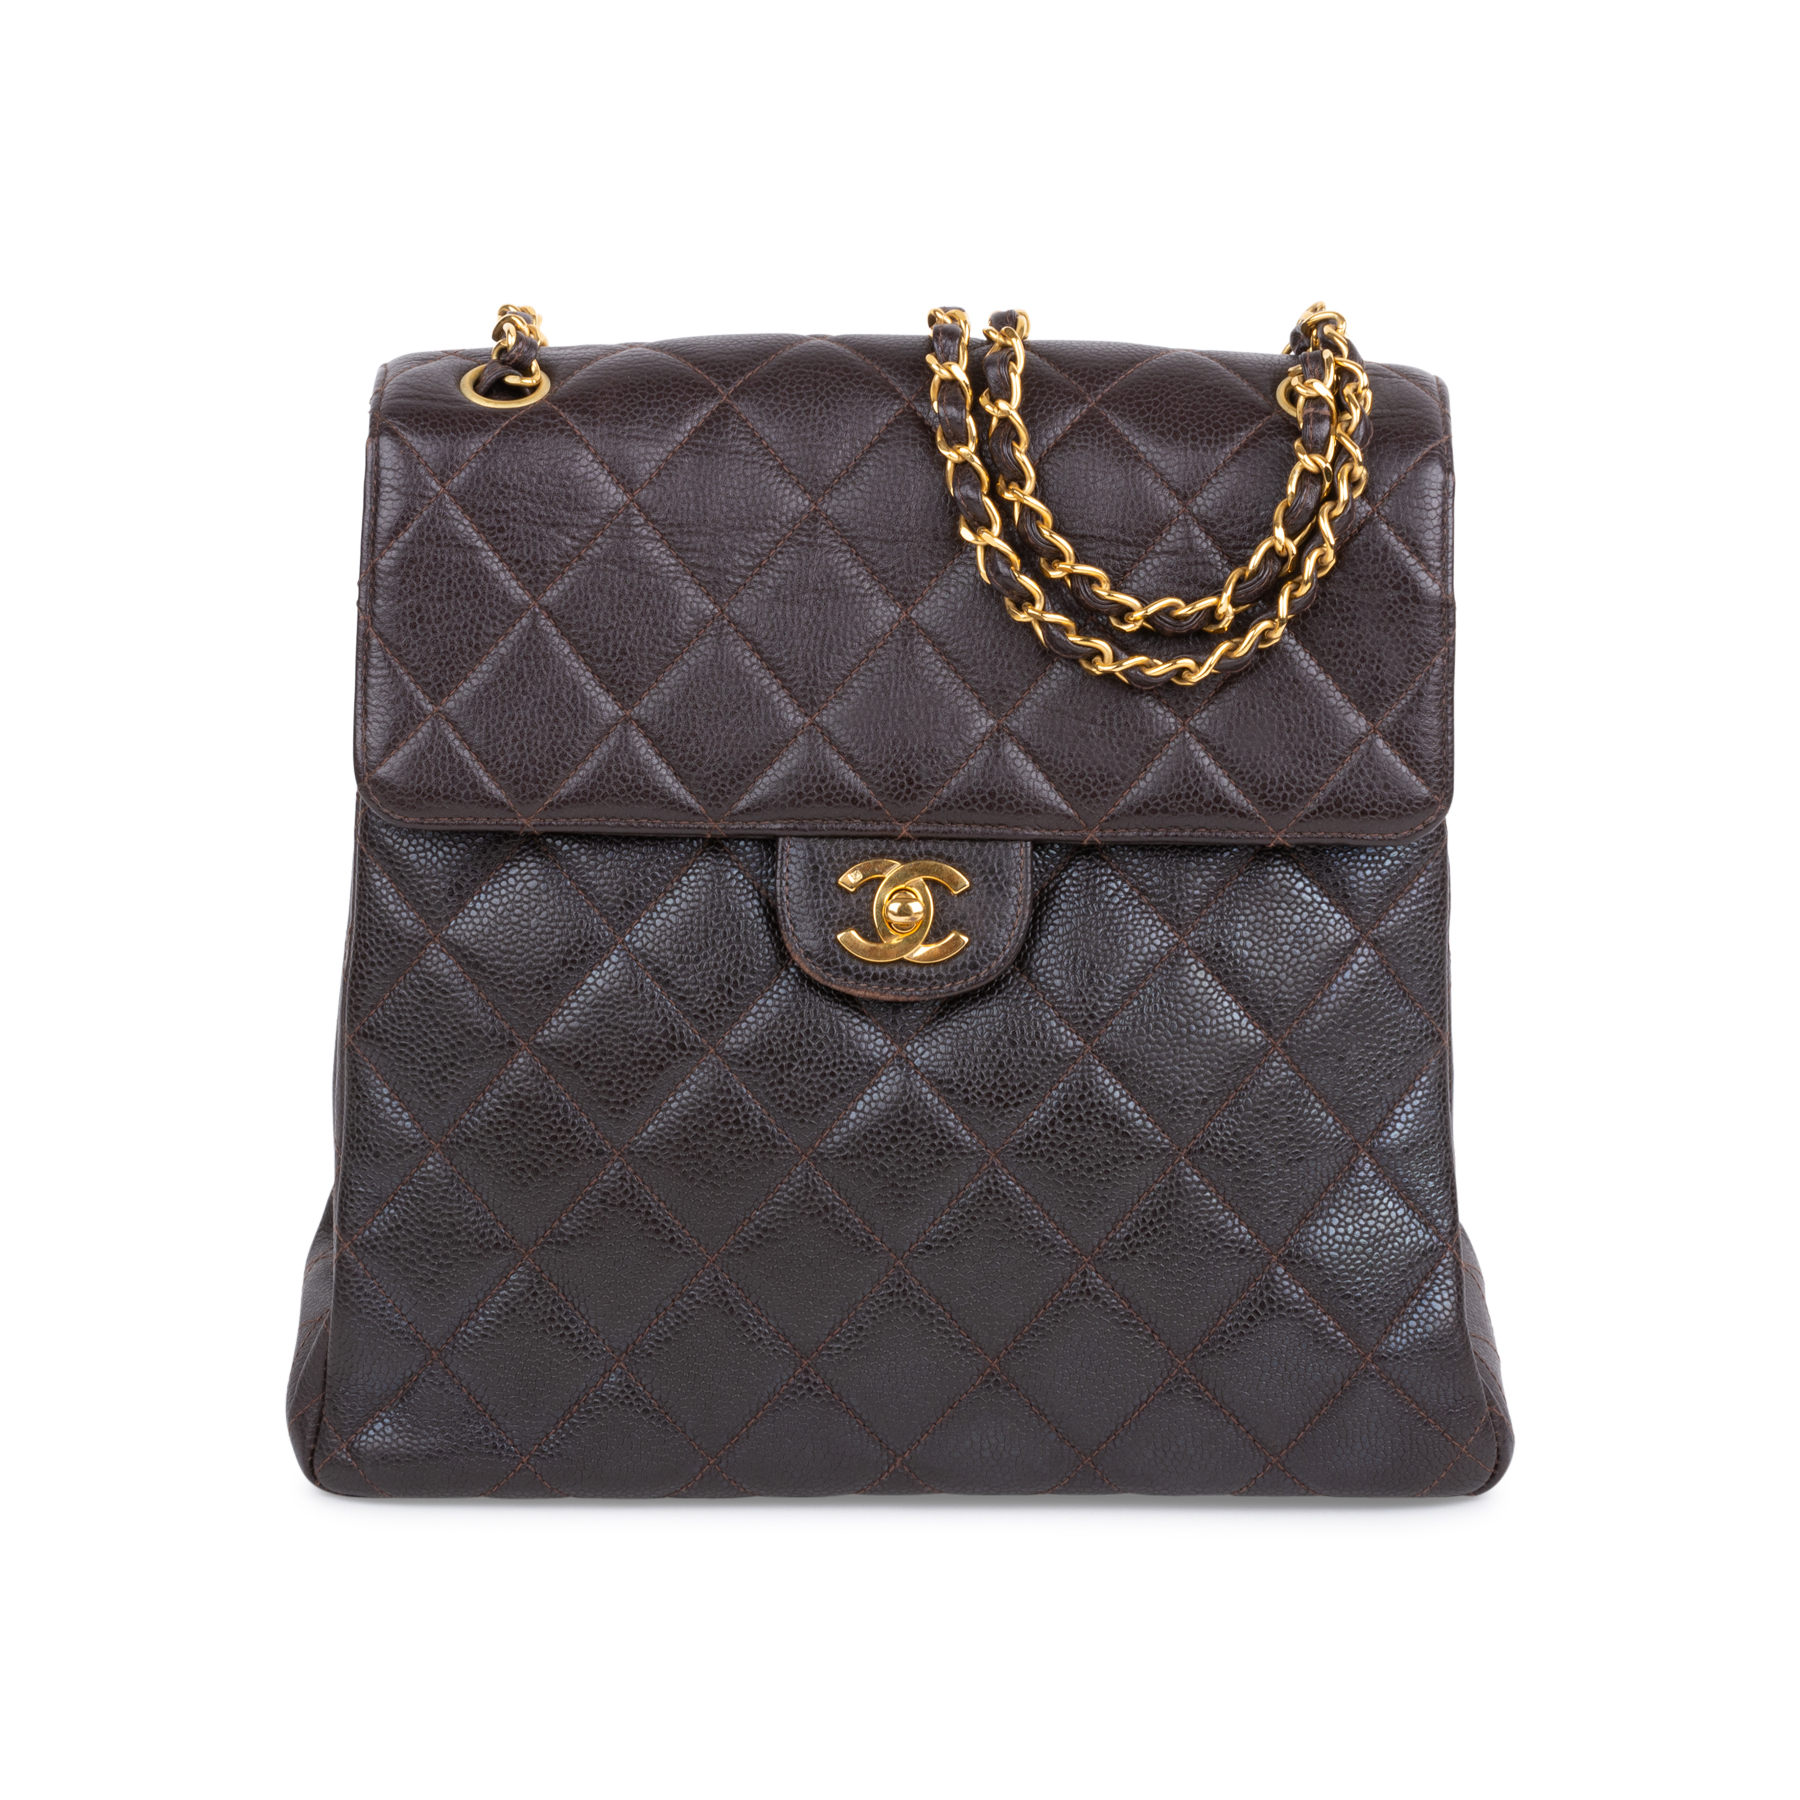 a3bc9db6ed7d Authentic Vintage Chanel Double Sided Flap Bag (PSS-606-00013) | THE FIFTH  COLLECTION